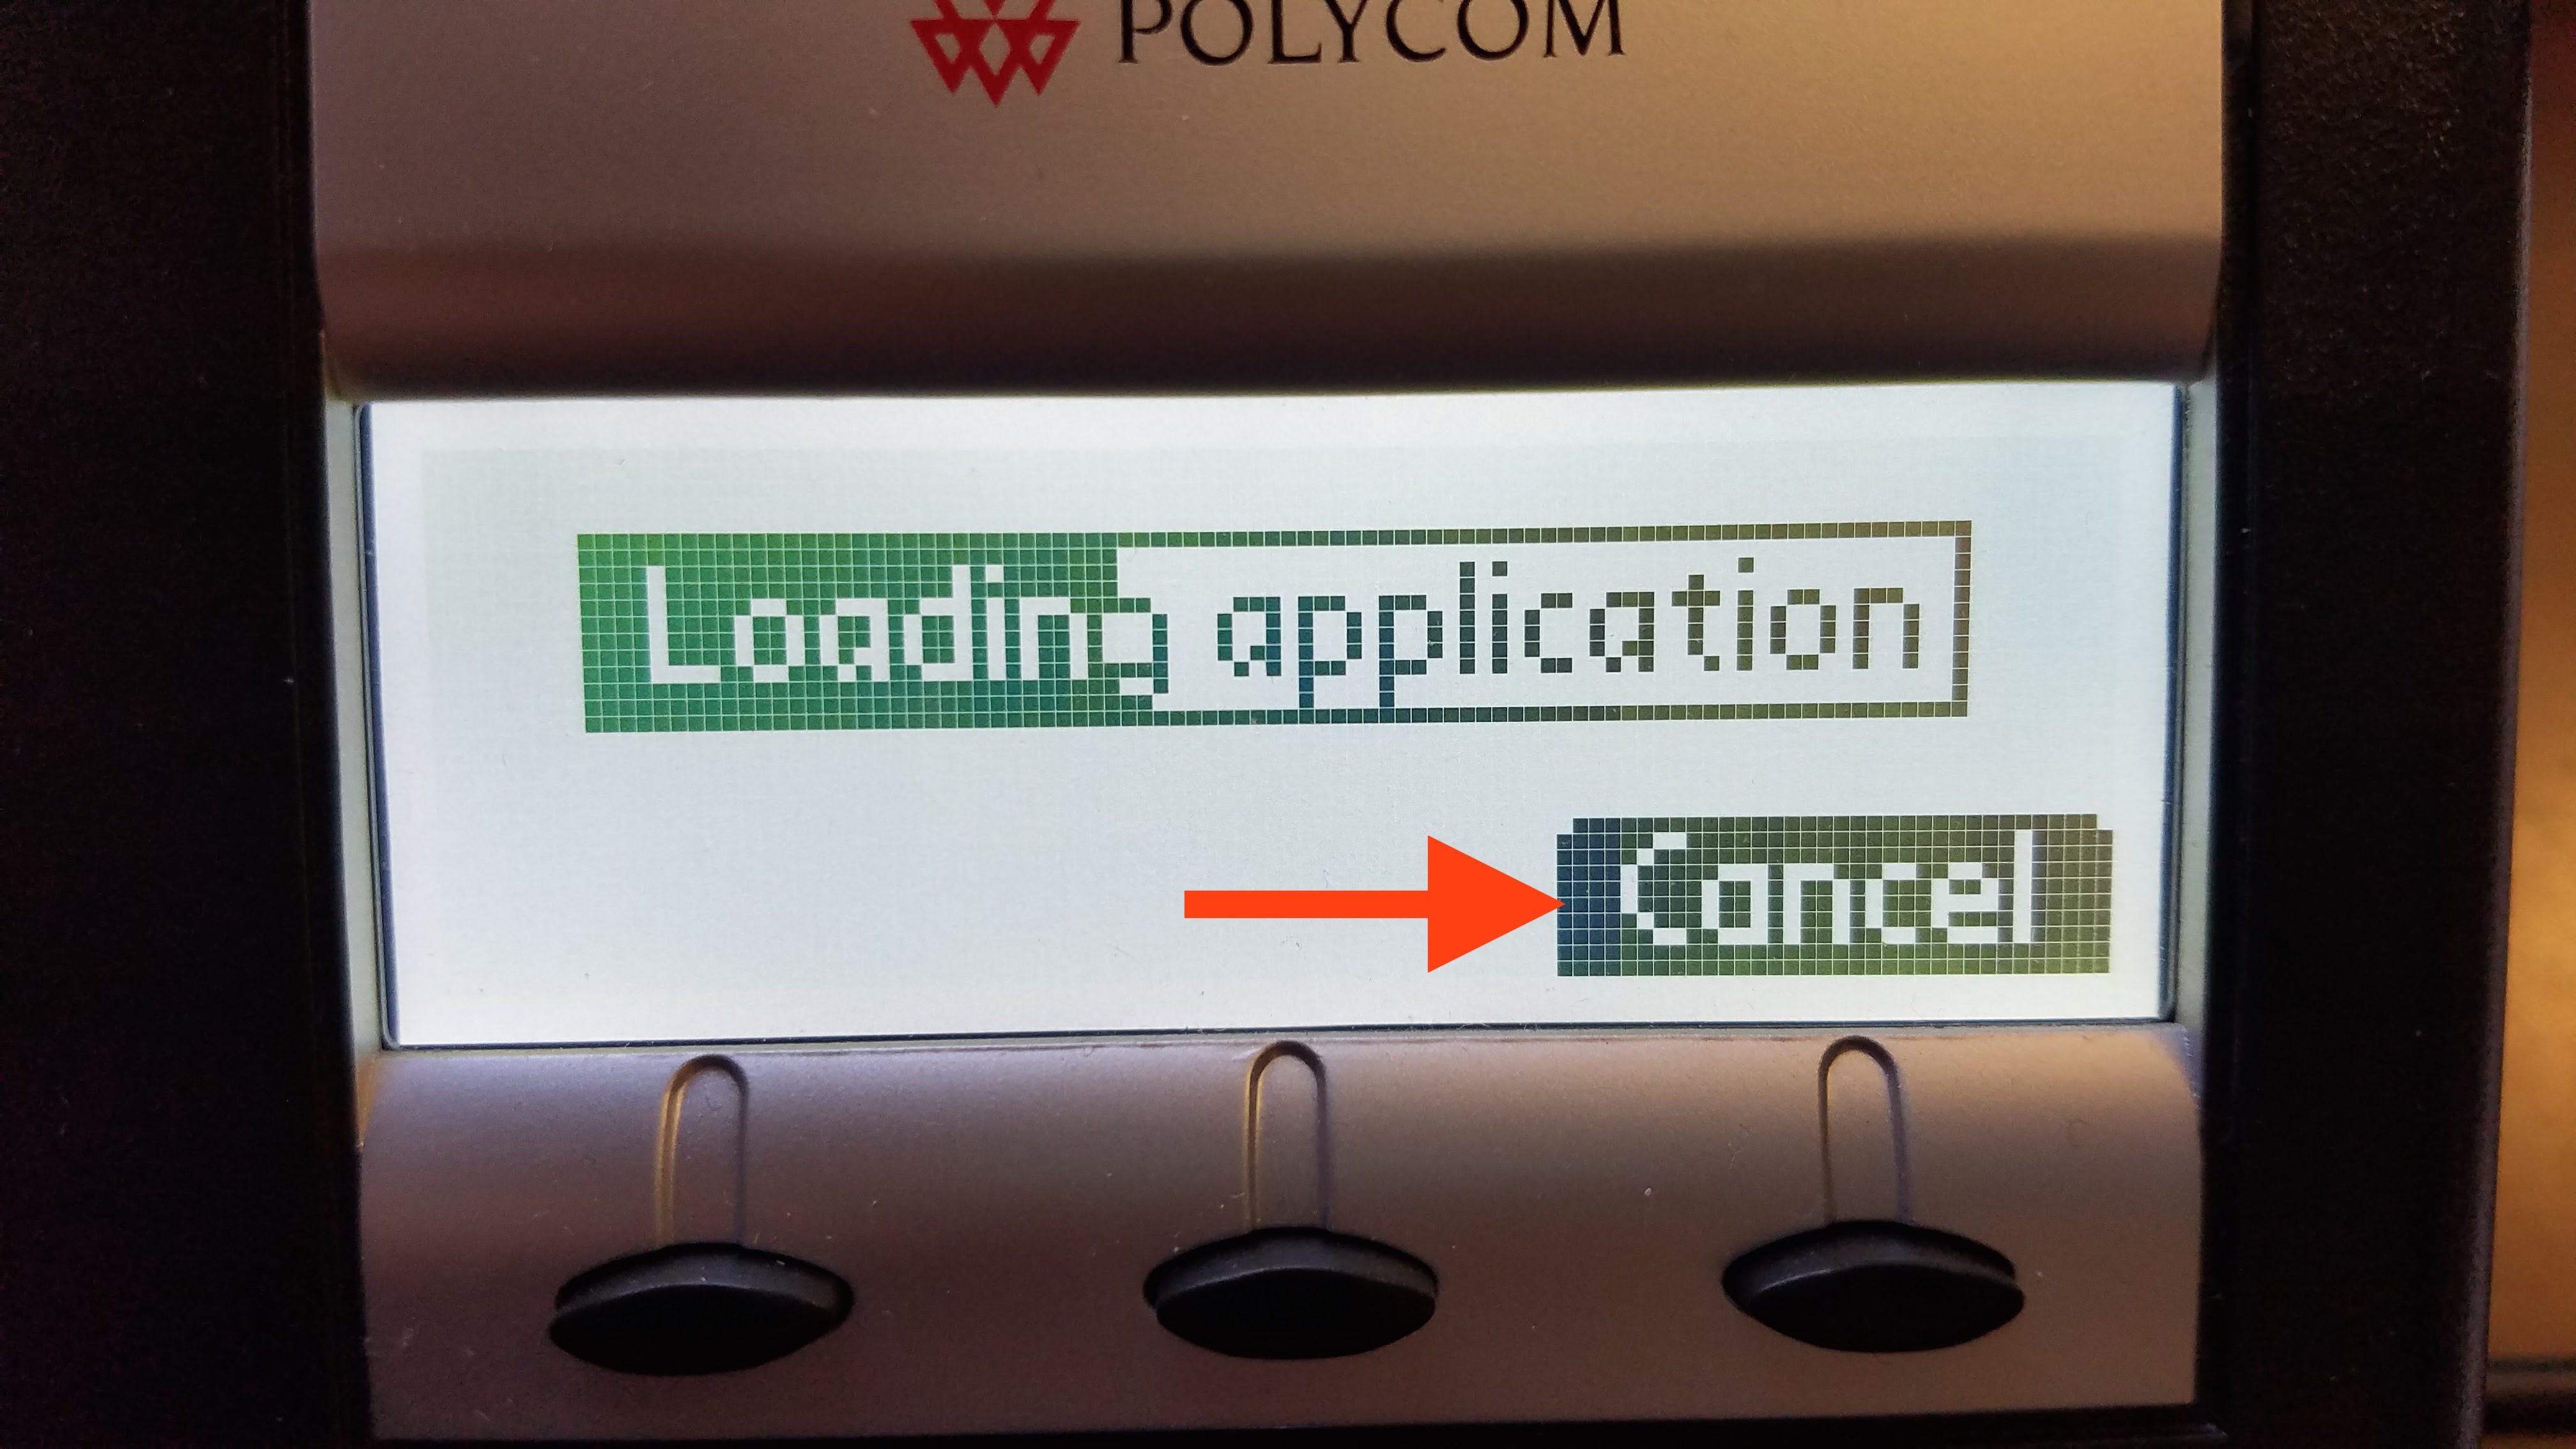 Polycom phone reset to factory default